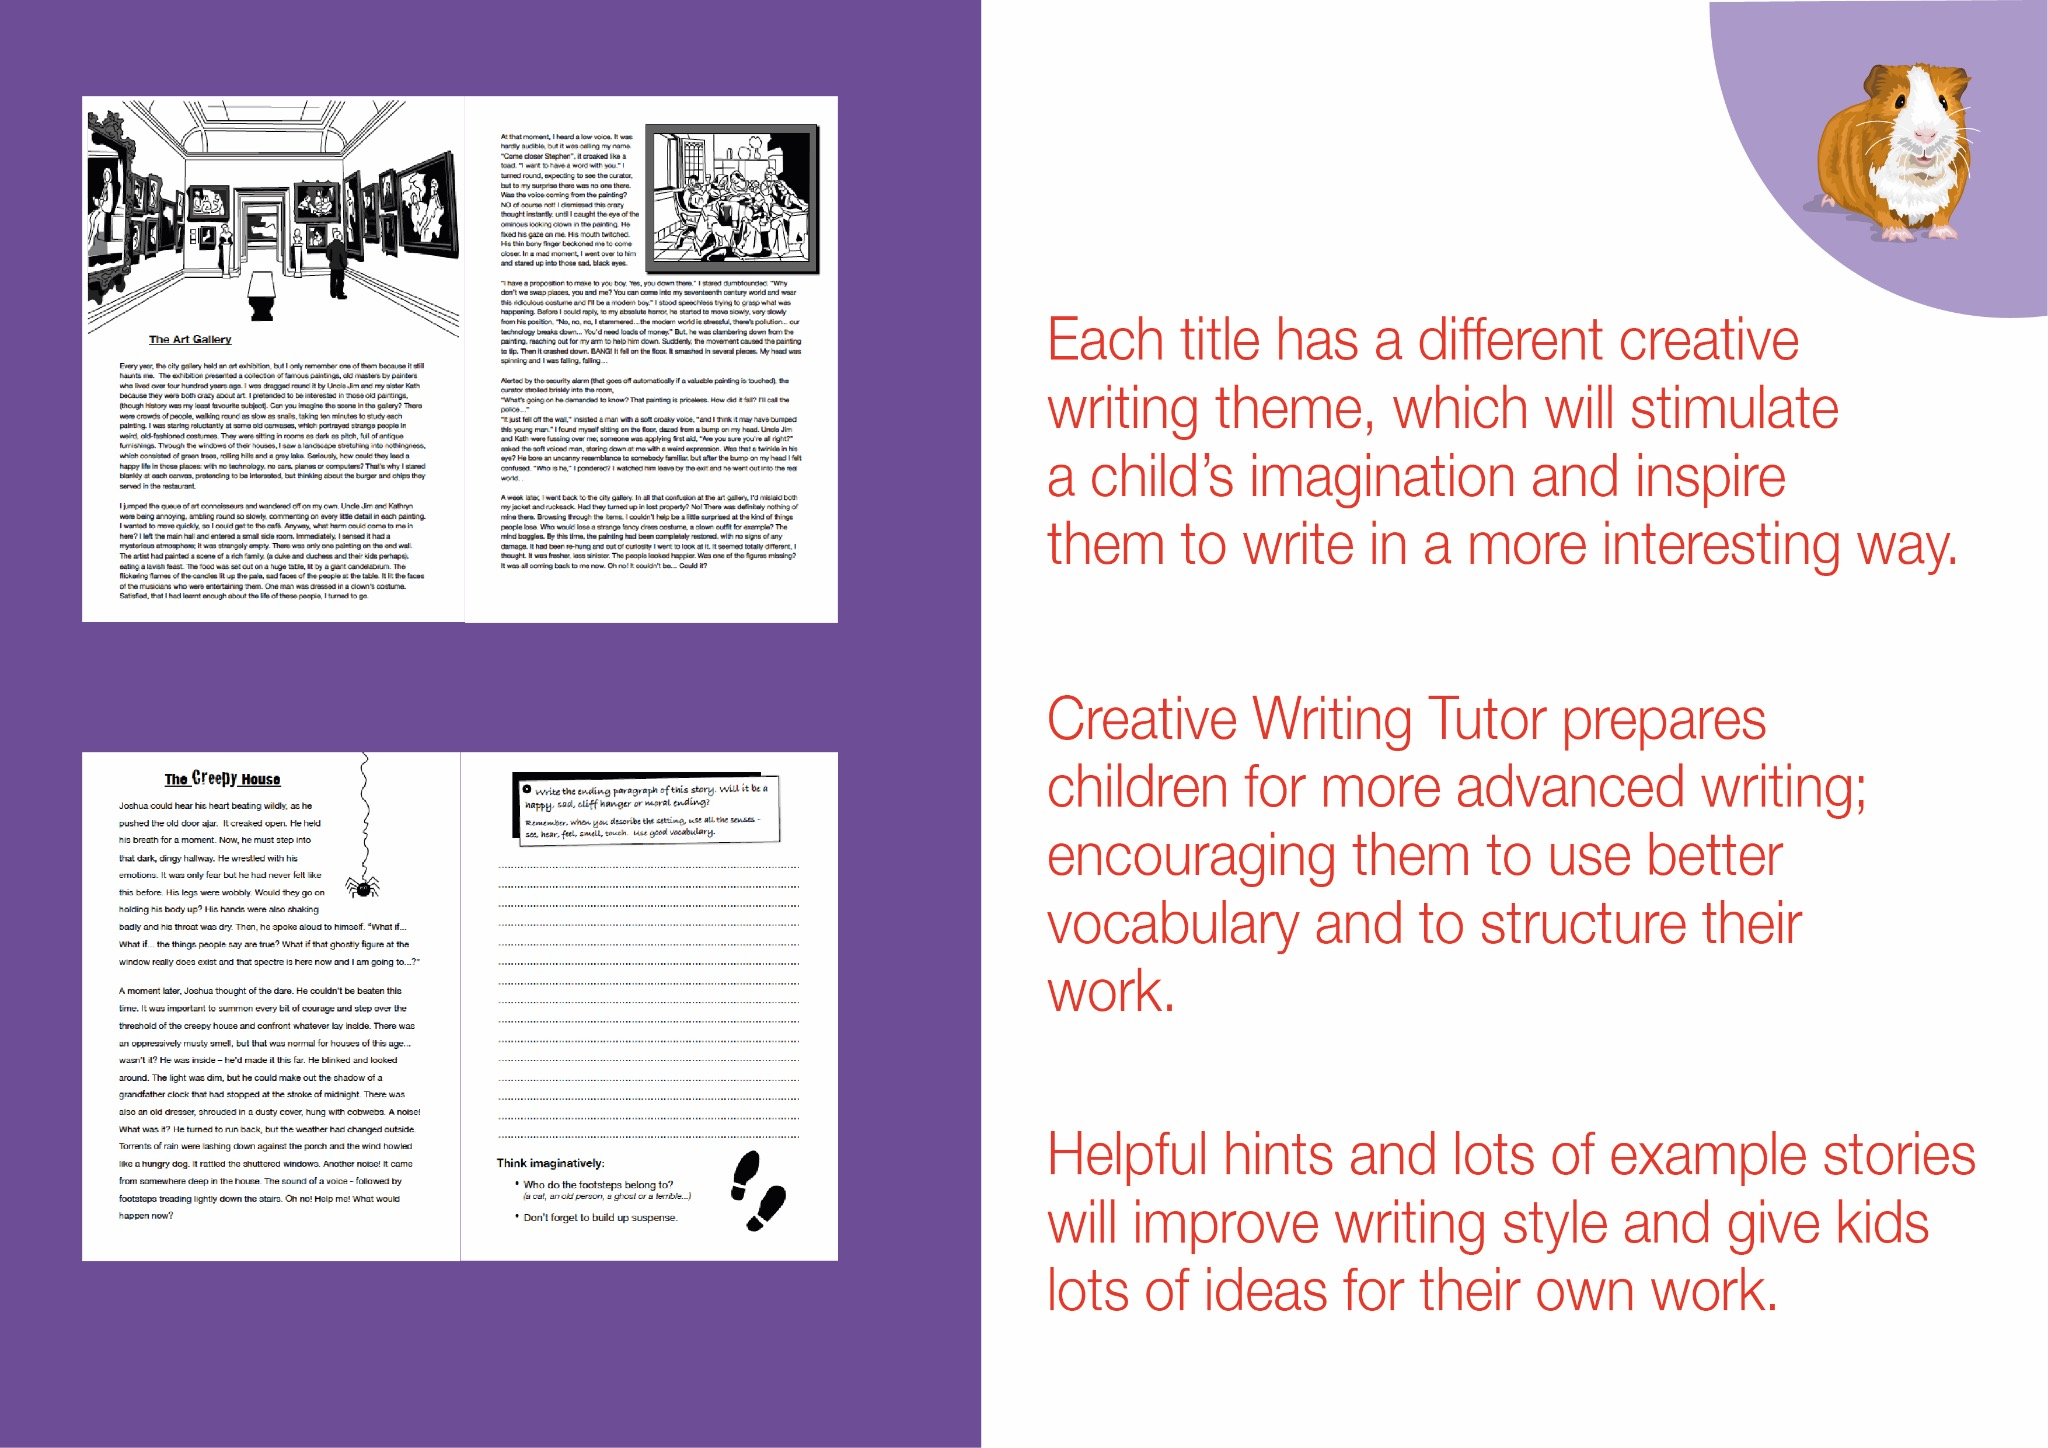 The Computer Game: Brush Up On Your Writing Skills (Creative Writing Tutor) (ages 9-13 years)